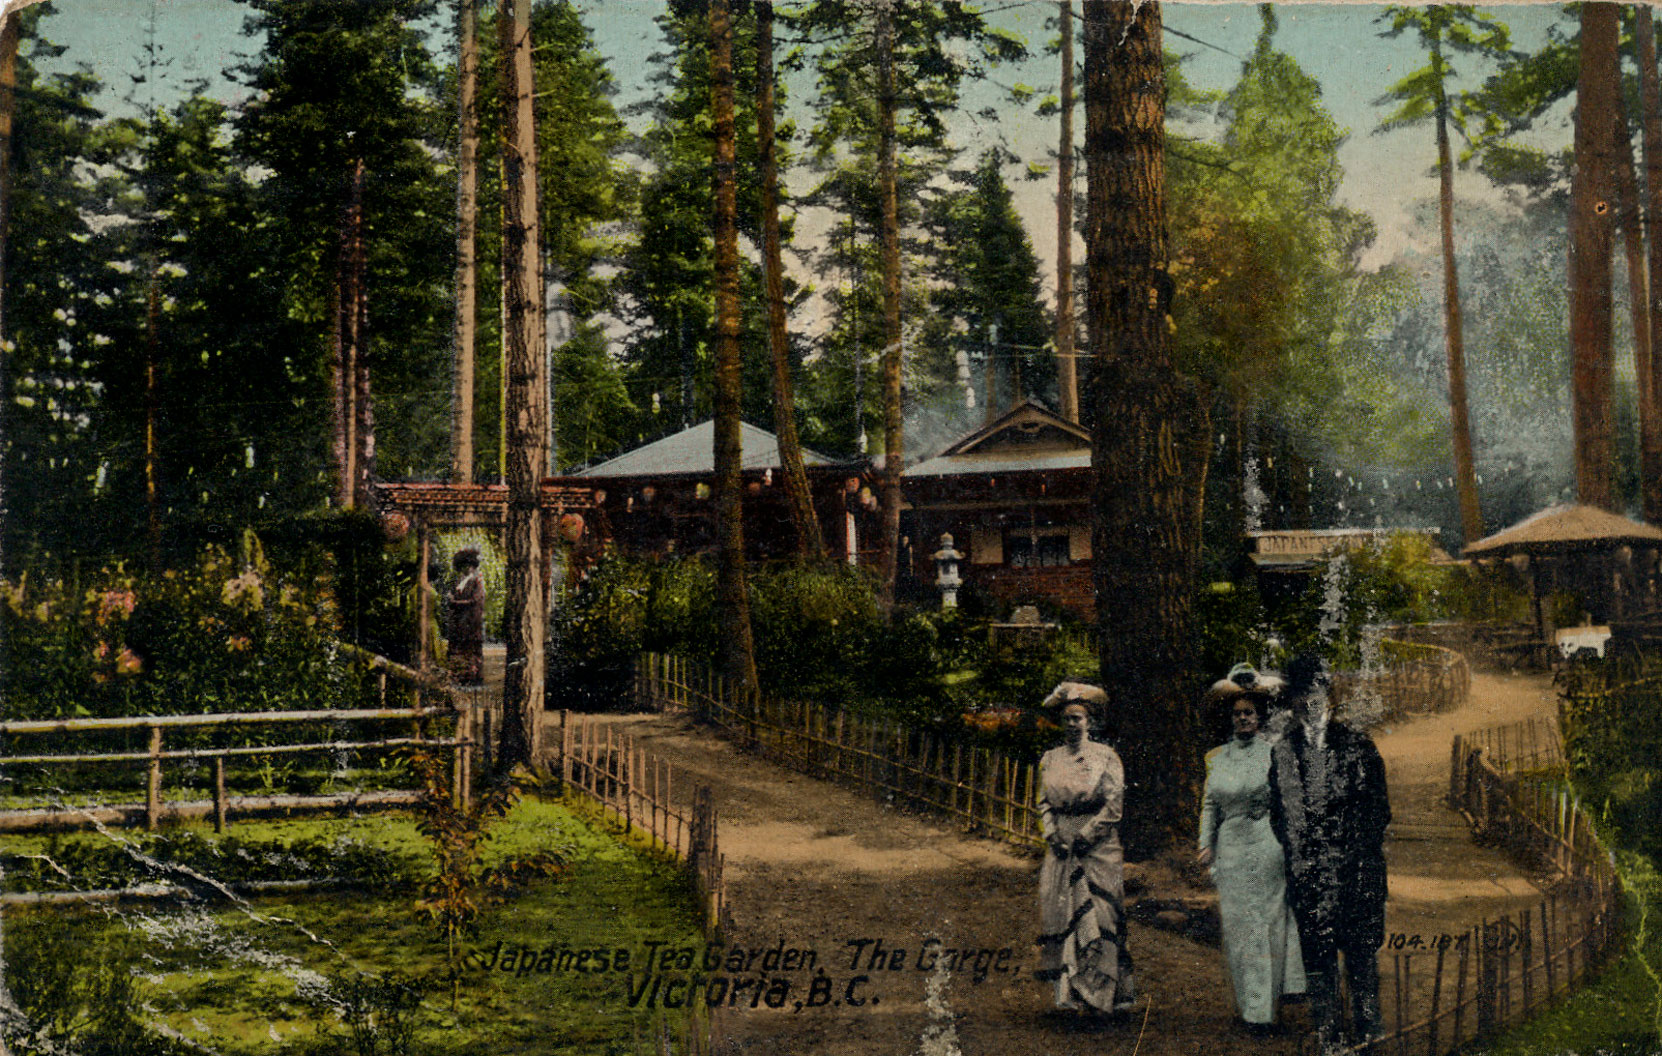 Postcard of the Japanese Tea Garden designed by Isaburo Kishidaat Gorge Park, Victoria, B.C. This postcard is postmarked in 1913.(Author's collection)